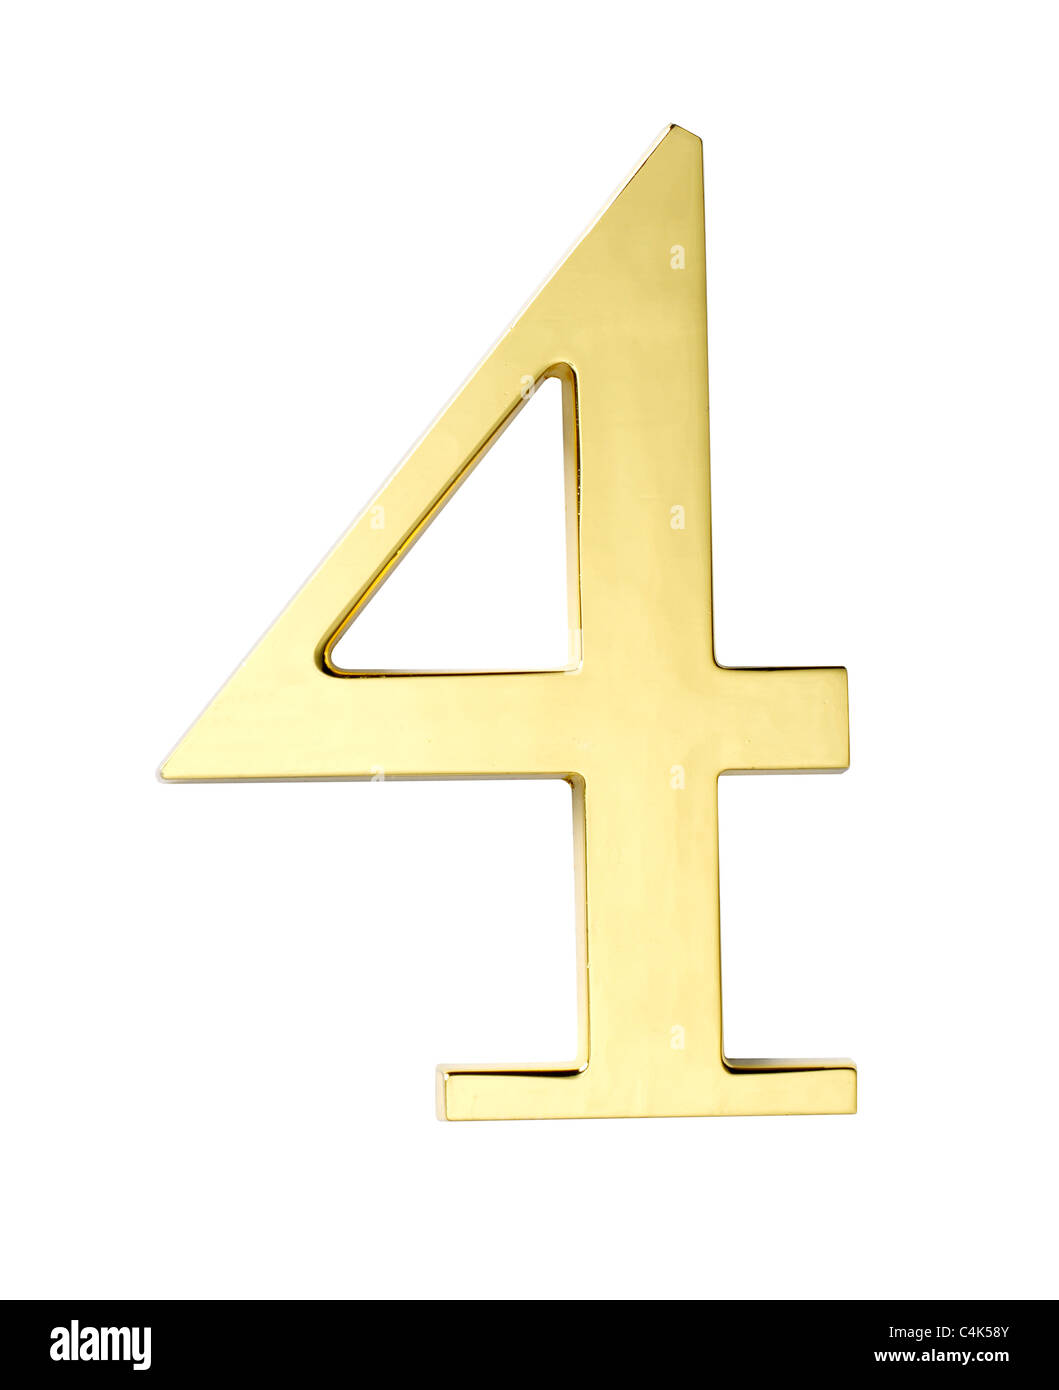 gold metal number four 4 - Stock Image